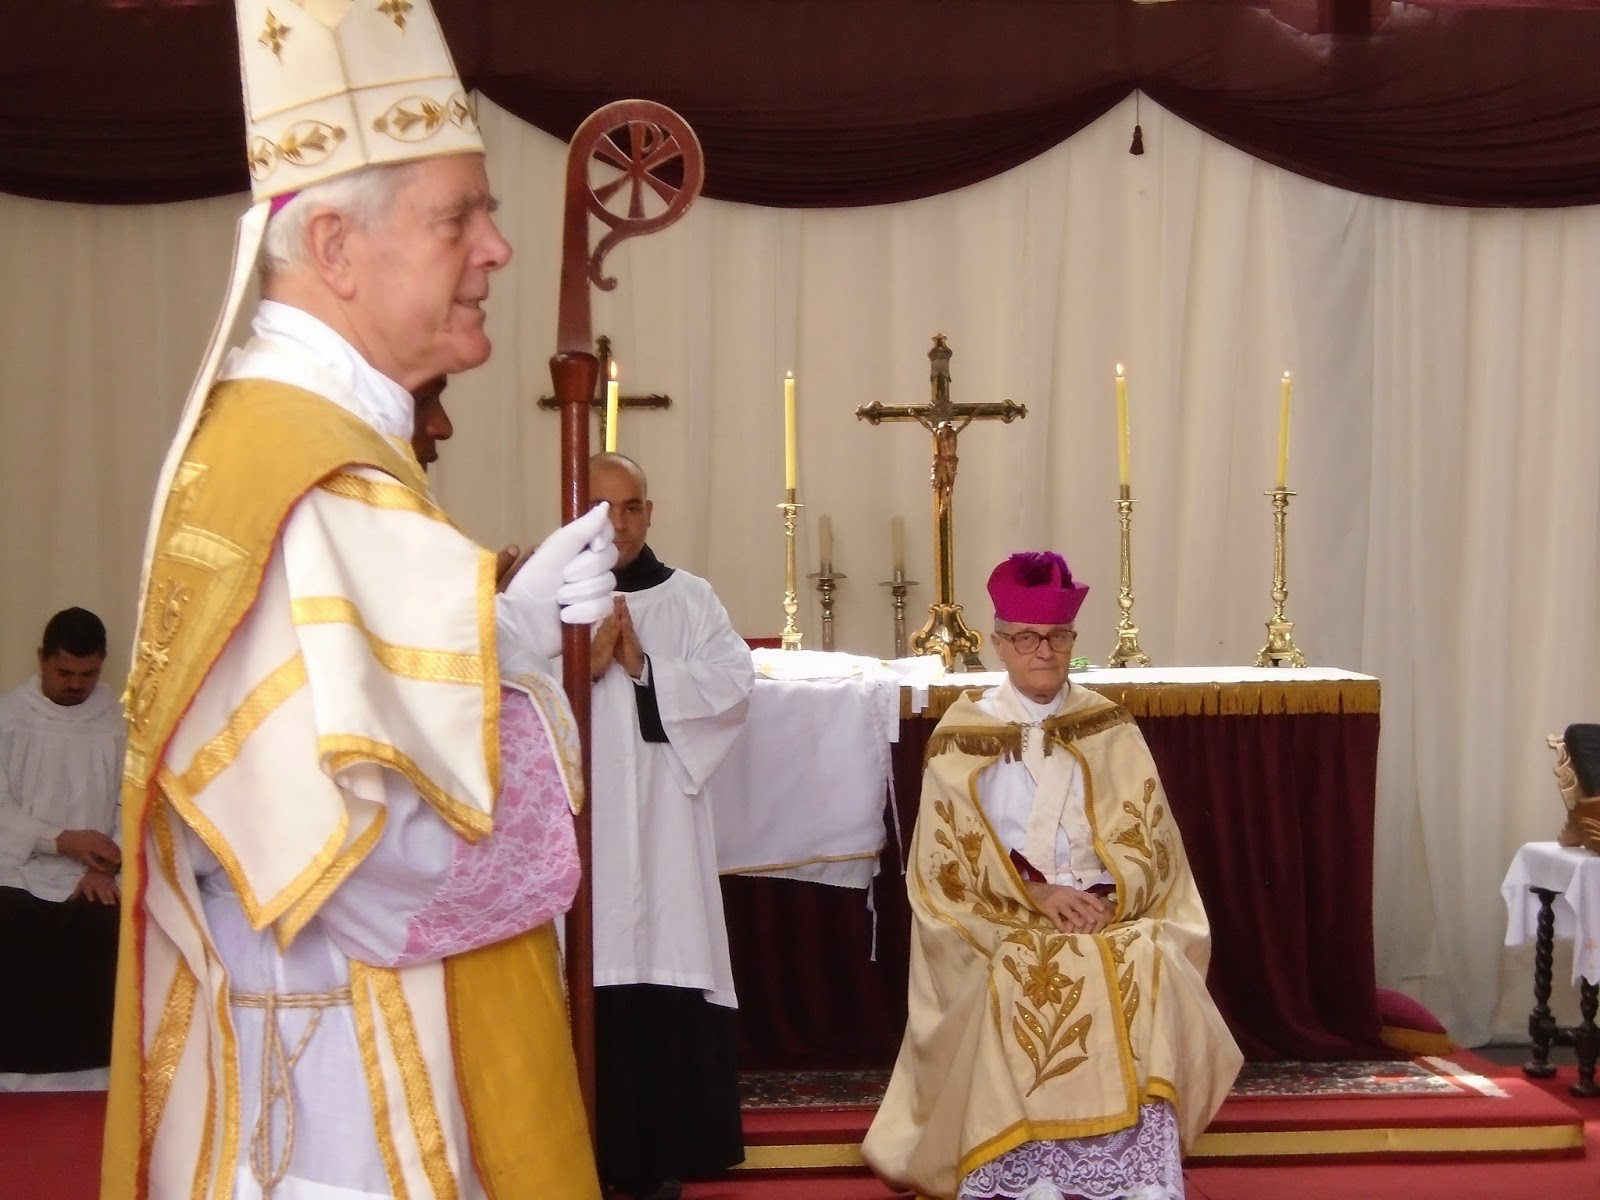 Sermon of Bishop Williamson at the 2015 consecration of Bishop Faure